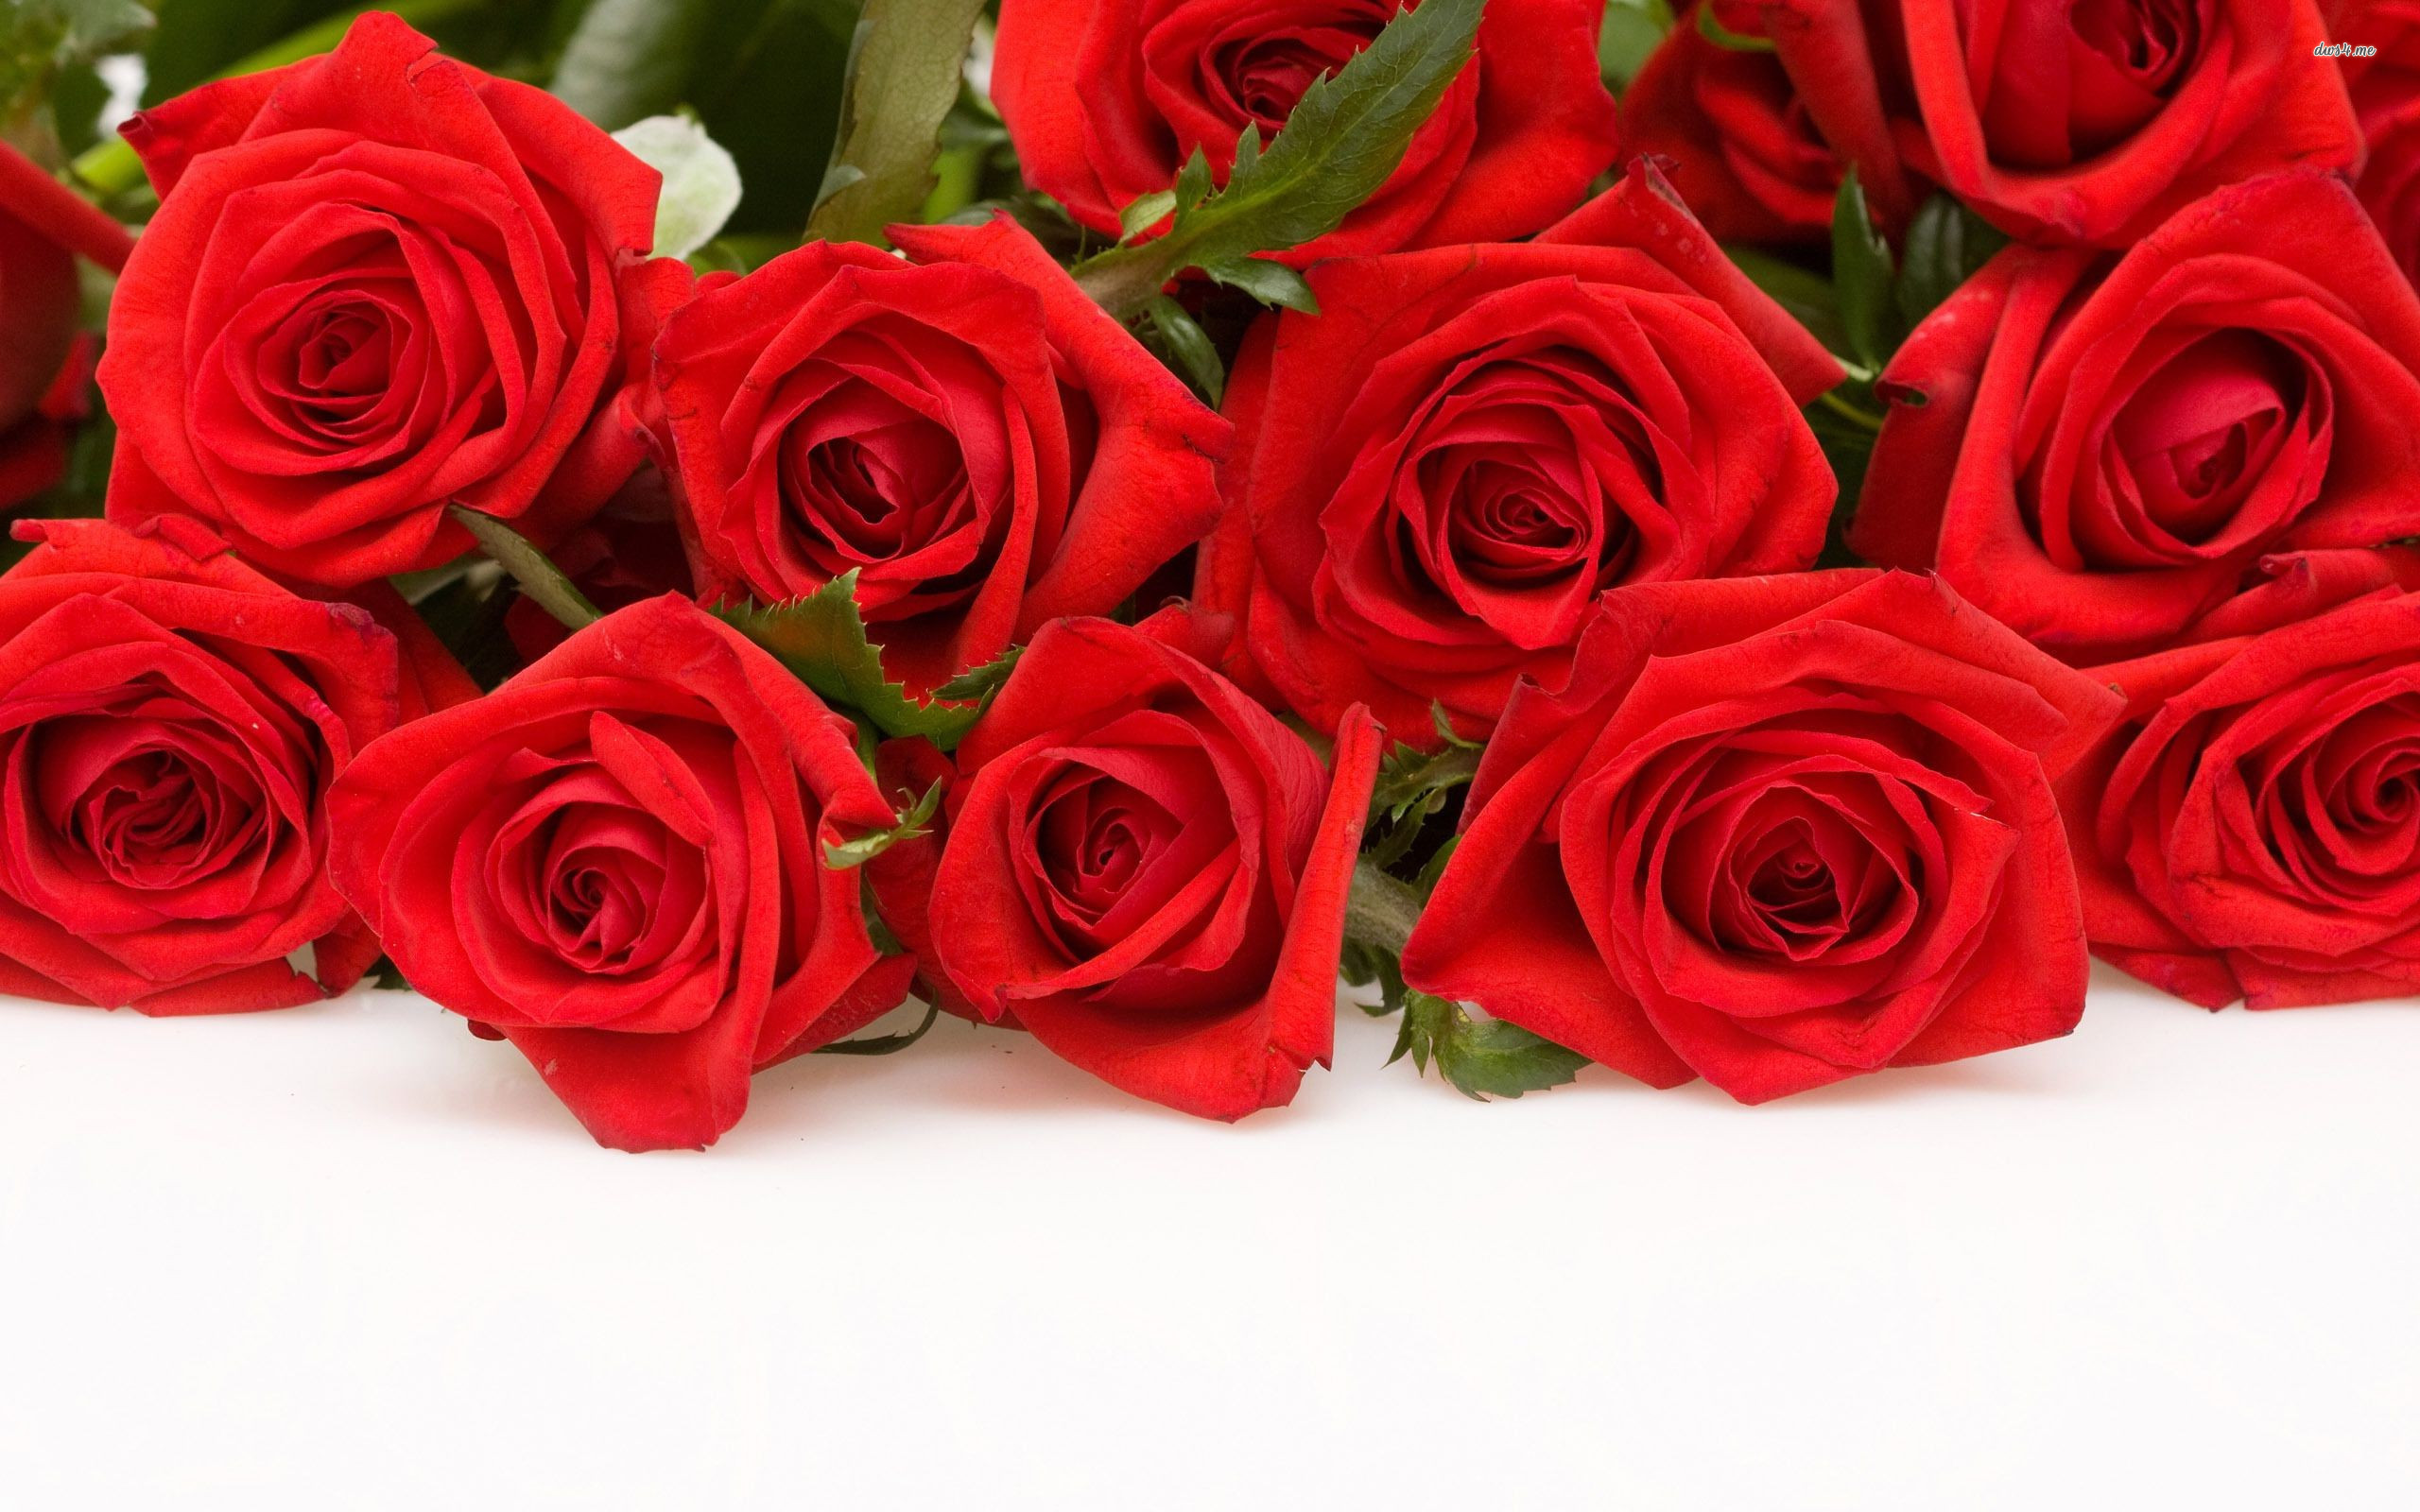 50 beautiful red rose images to download the wow style - Red rose flower hd images ...